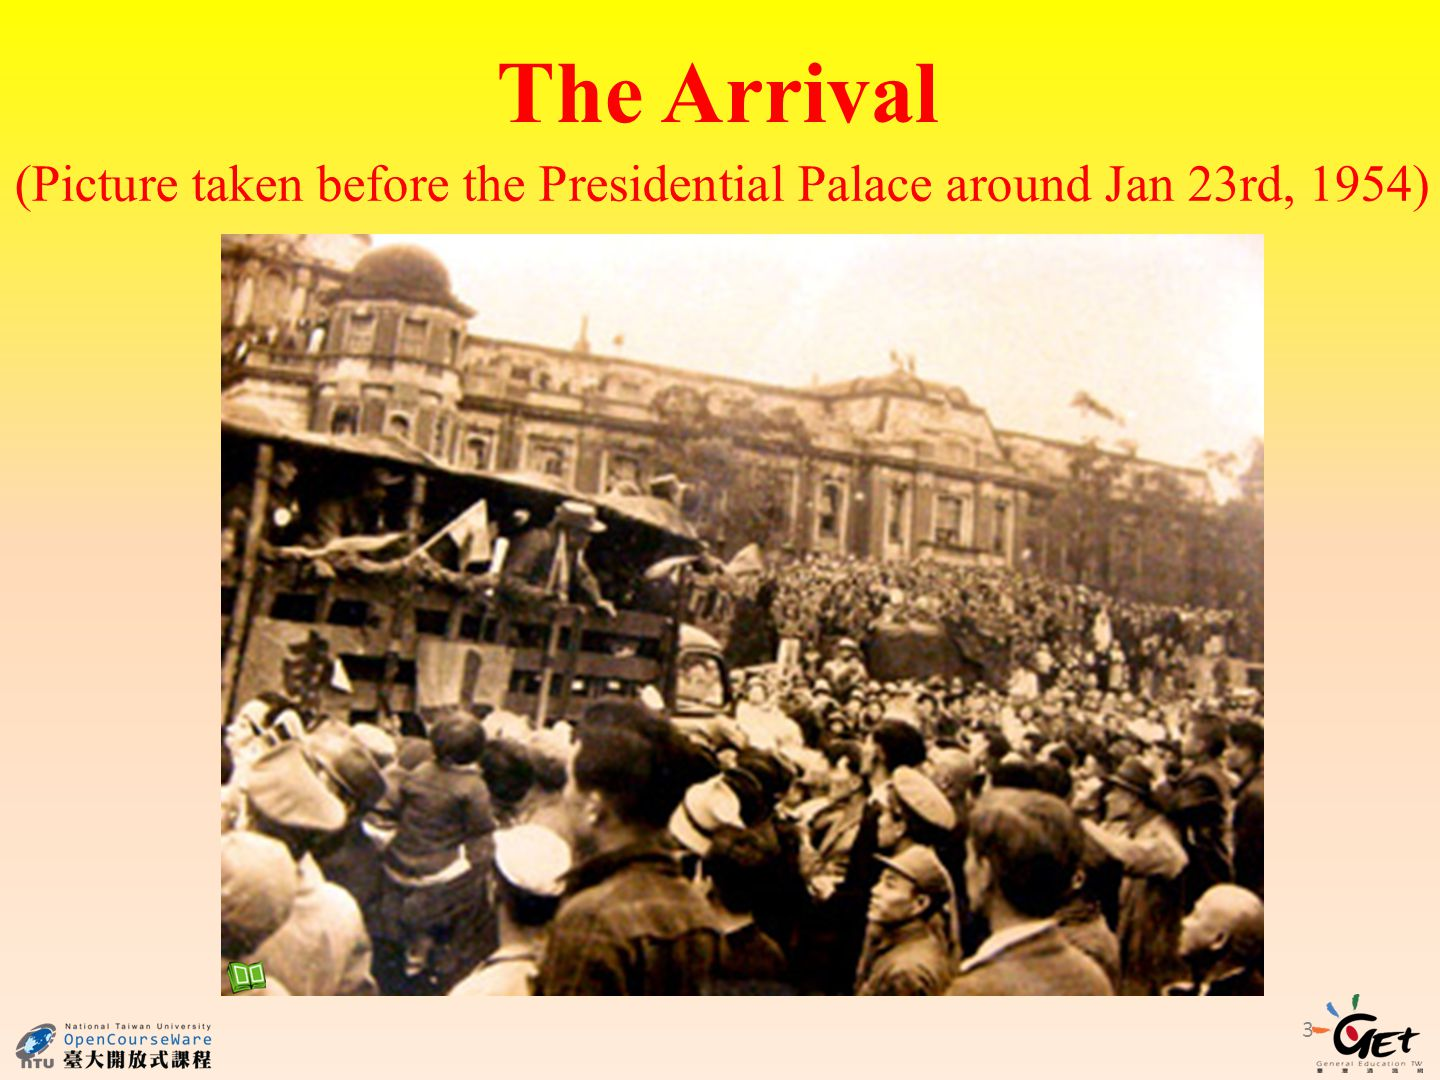 3 The Arrival (Picture taken before the Presidential Palace around Jan 23rd, 1954)